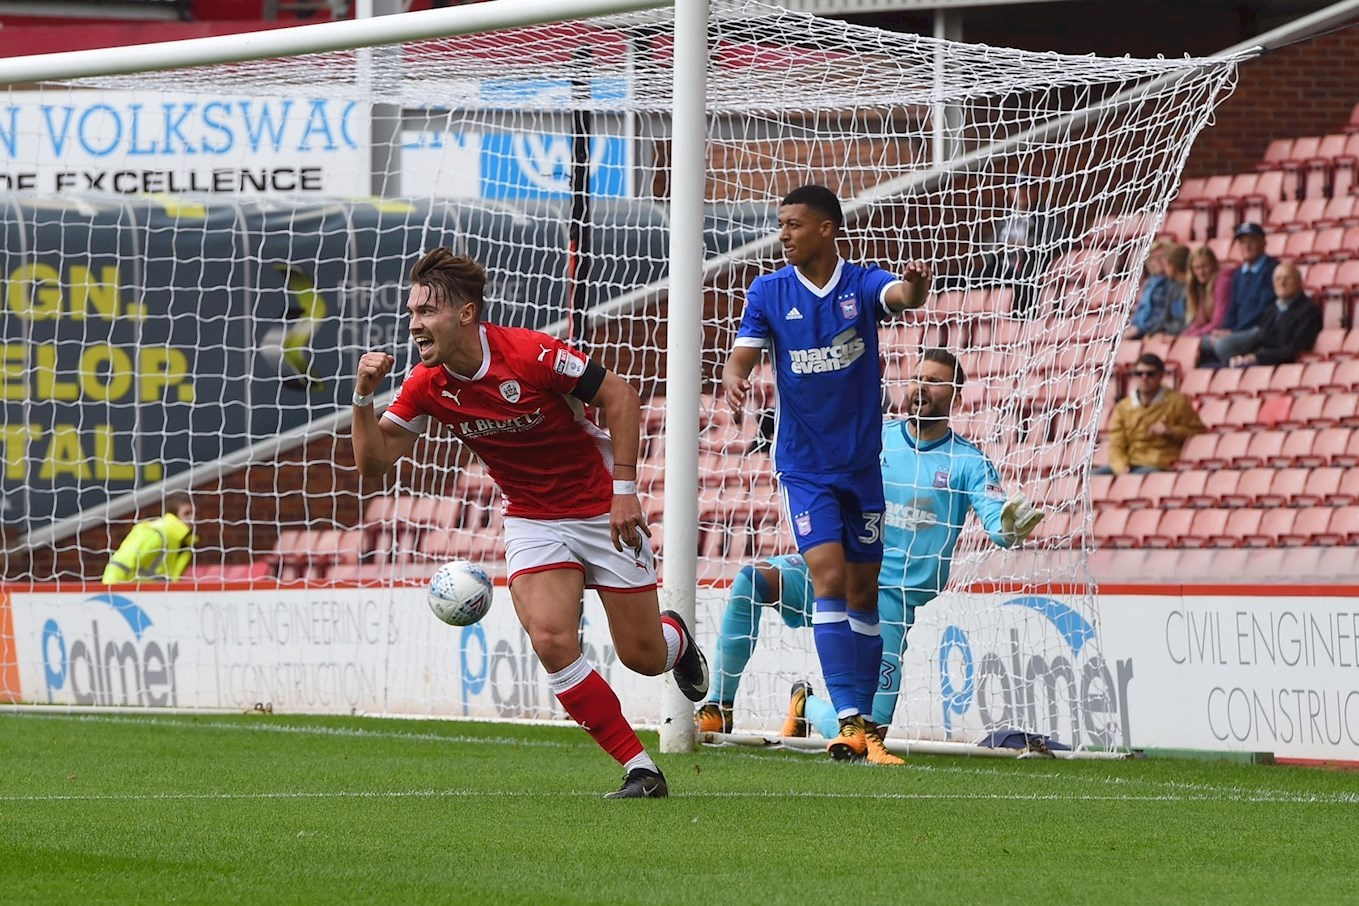 a8e9e266f53 PREVIEW  Ipswich Town Vs Barnsley - News - Barnsley Football Club